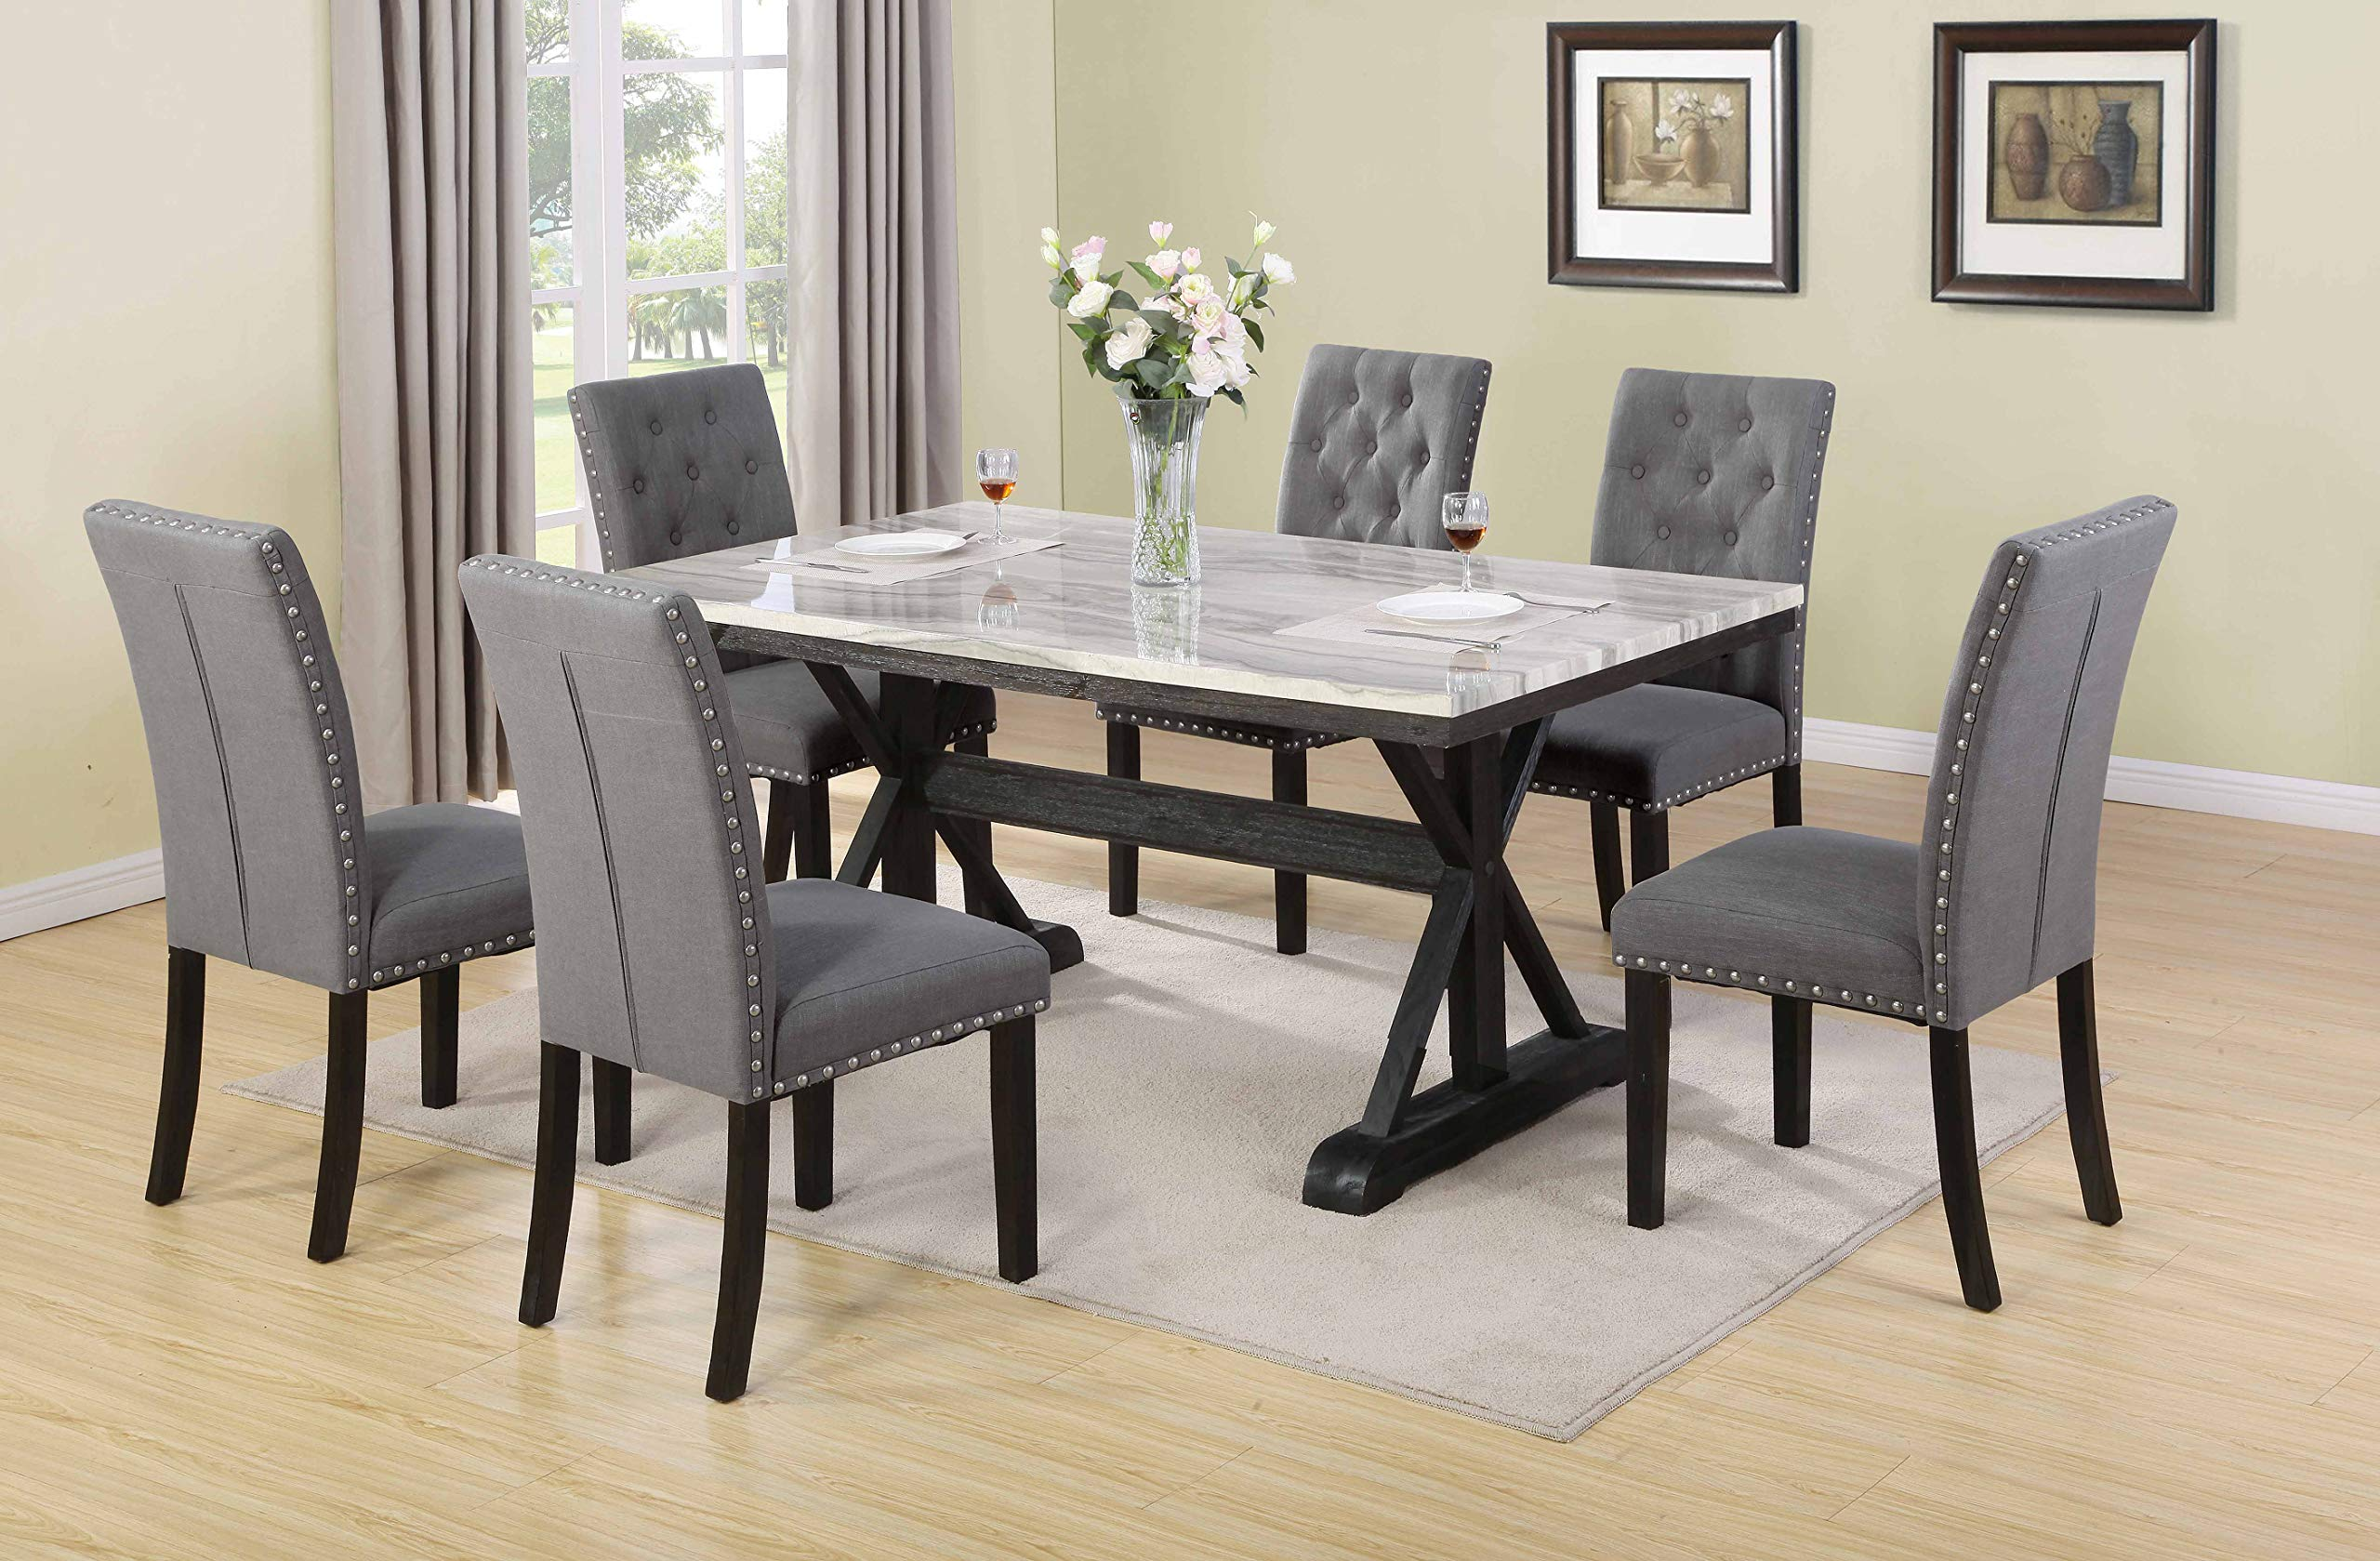 Best Quality Furniture 9PC Dining Set 9 Table + 9 Chairs Gray